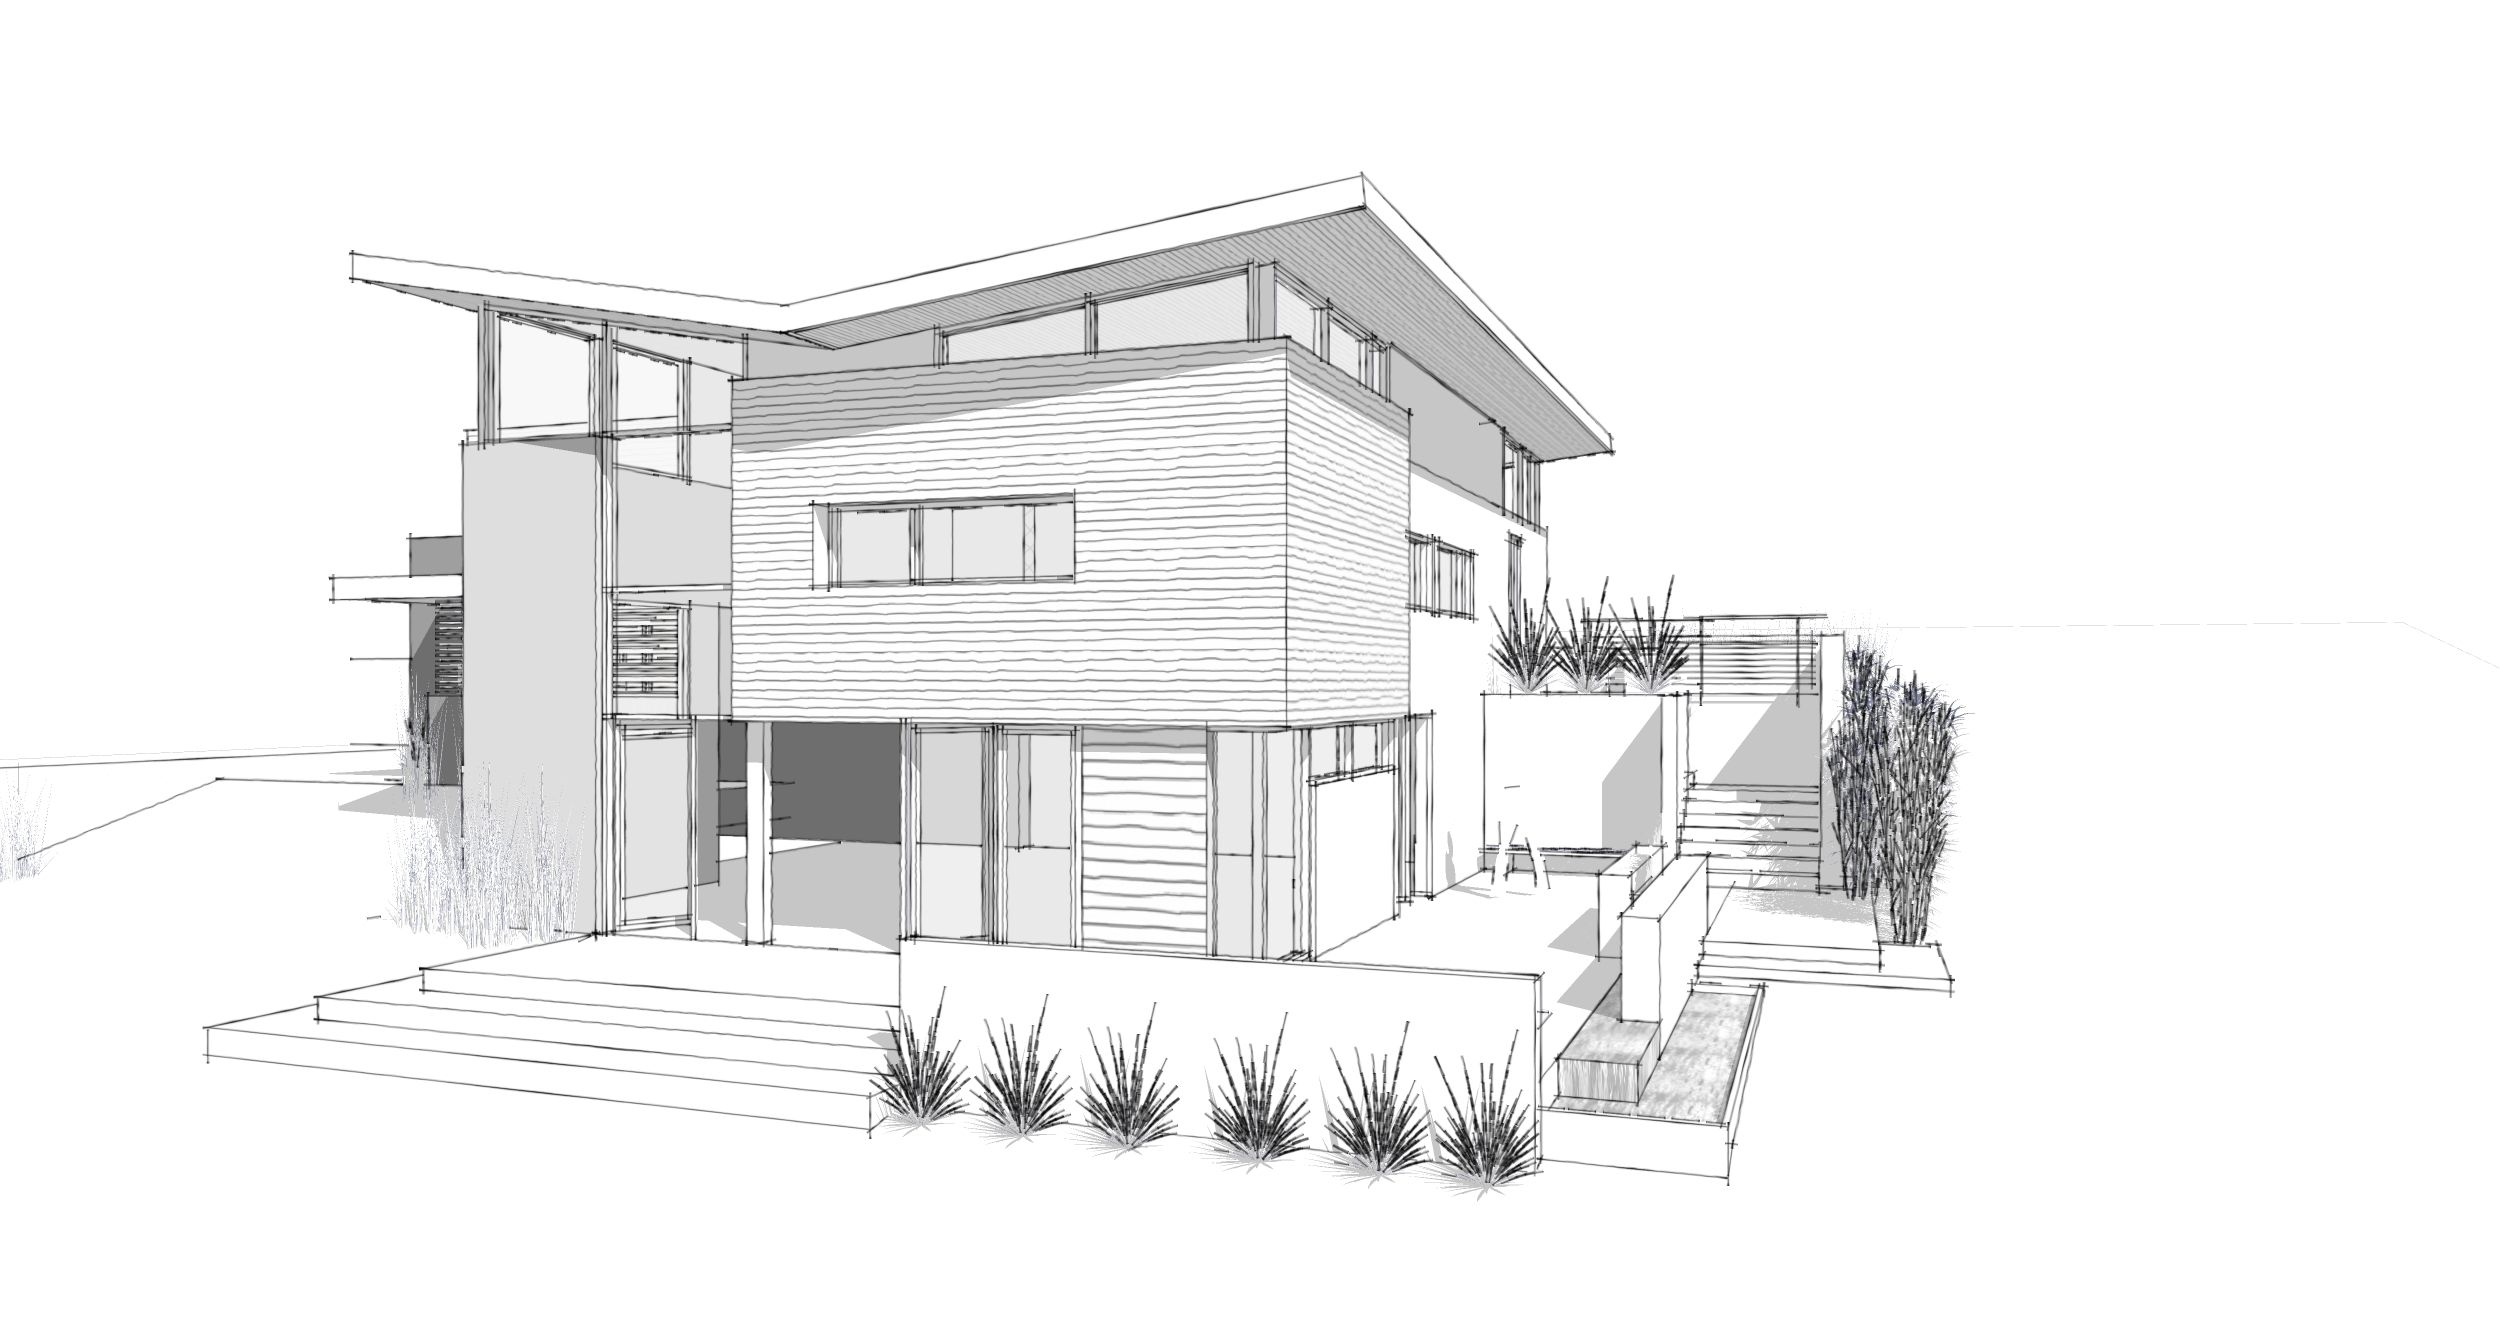 Modern home architecture sketches design ideas 13435 for Design architecture house